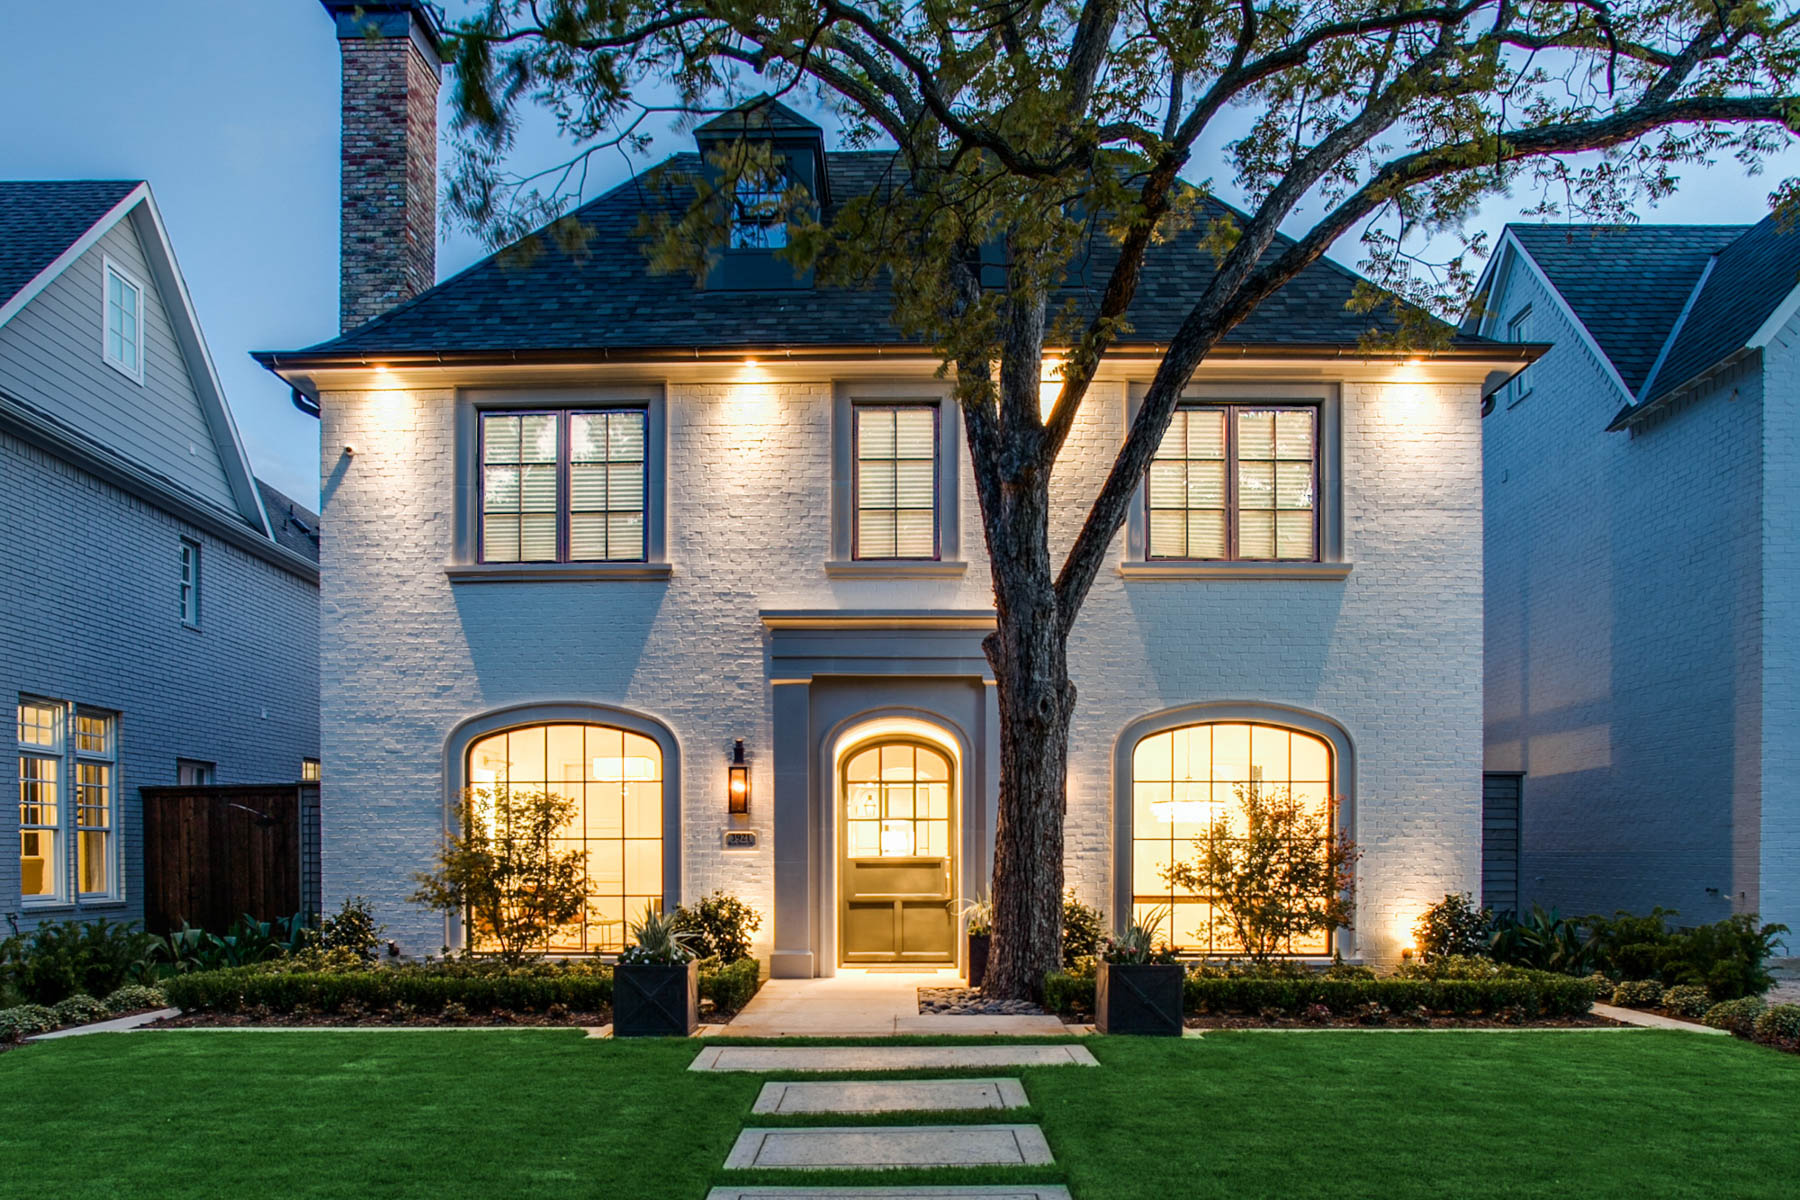 Single Family Home for Sale at Sophisticated Transitional in University Park 3612 Purdue Avenue Dallas, Texas 75225 United States